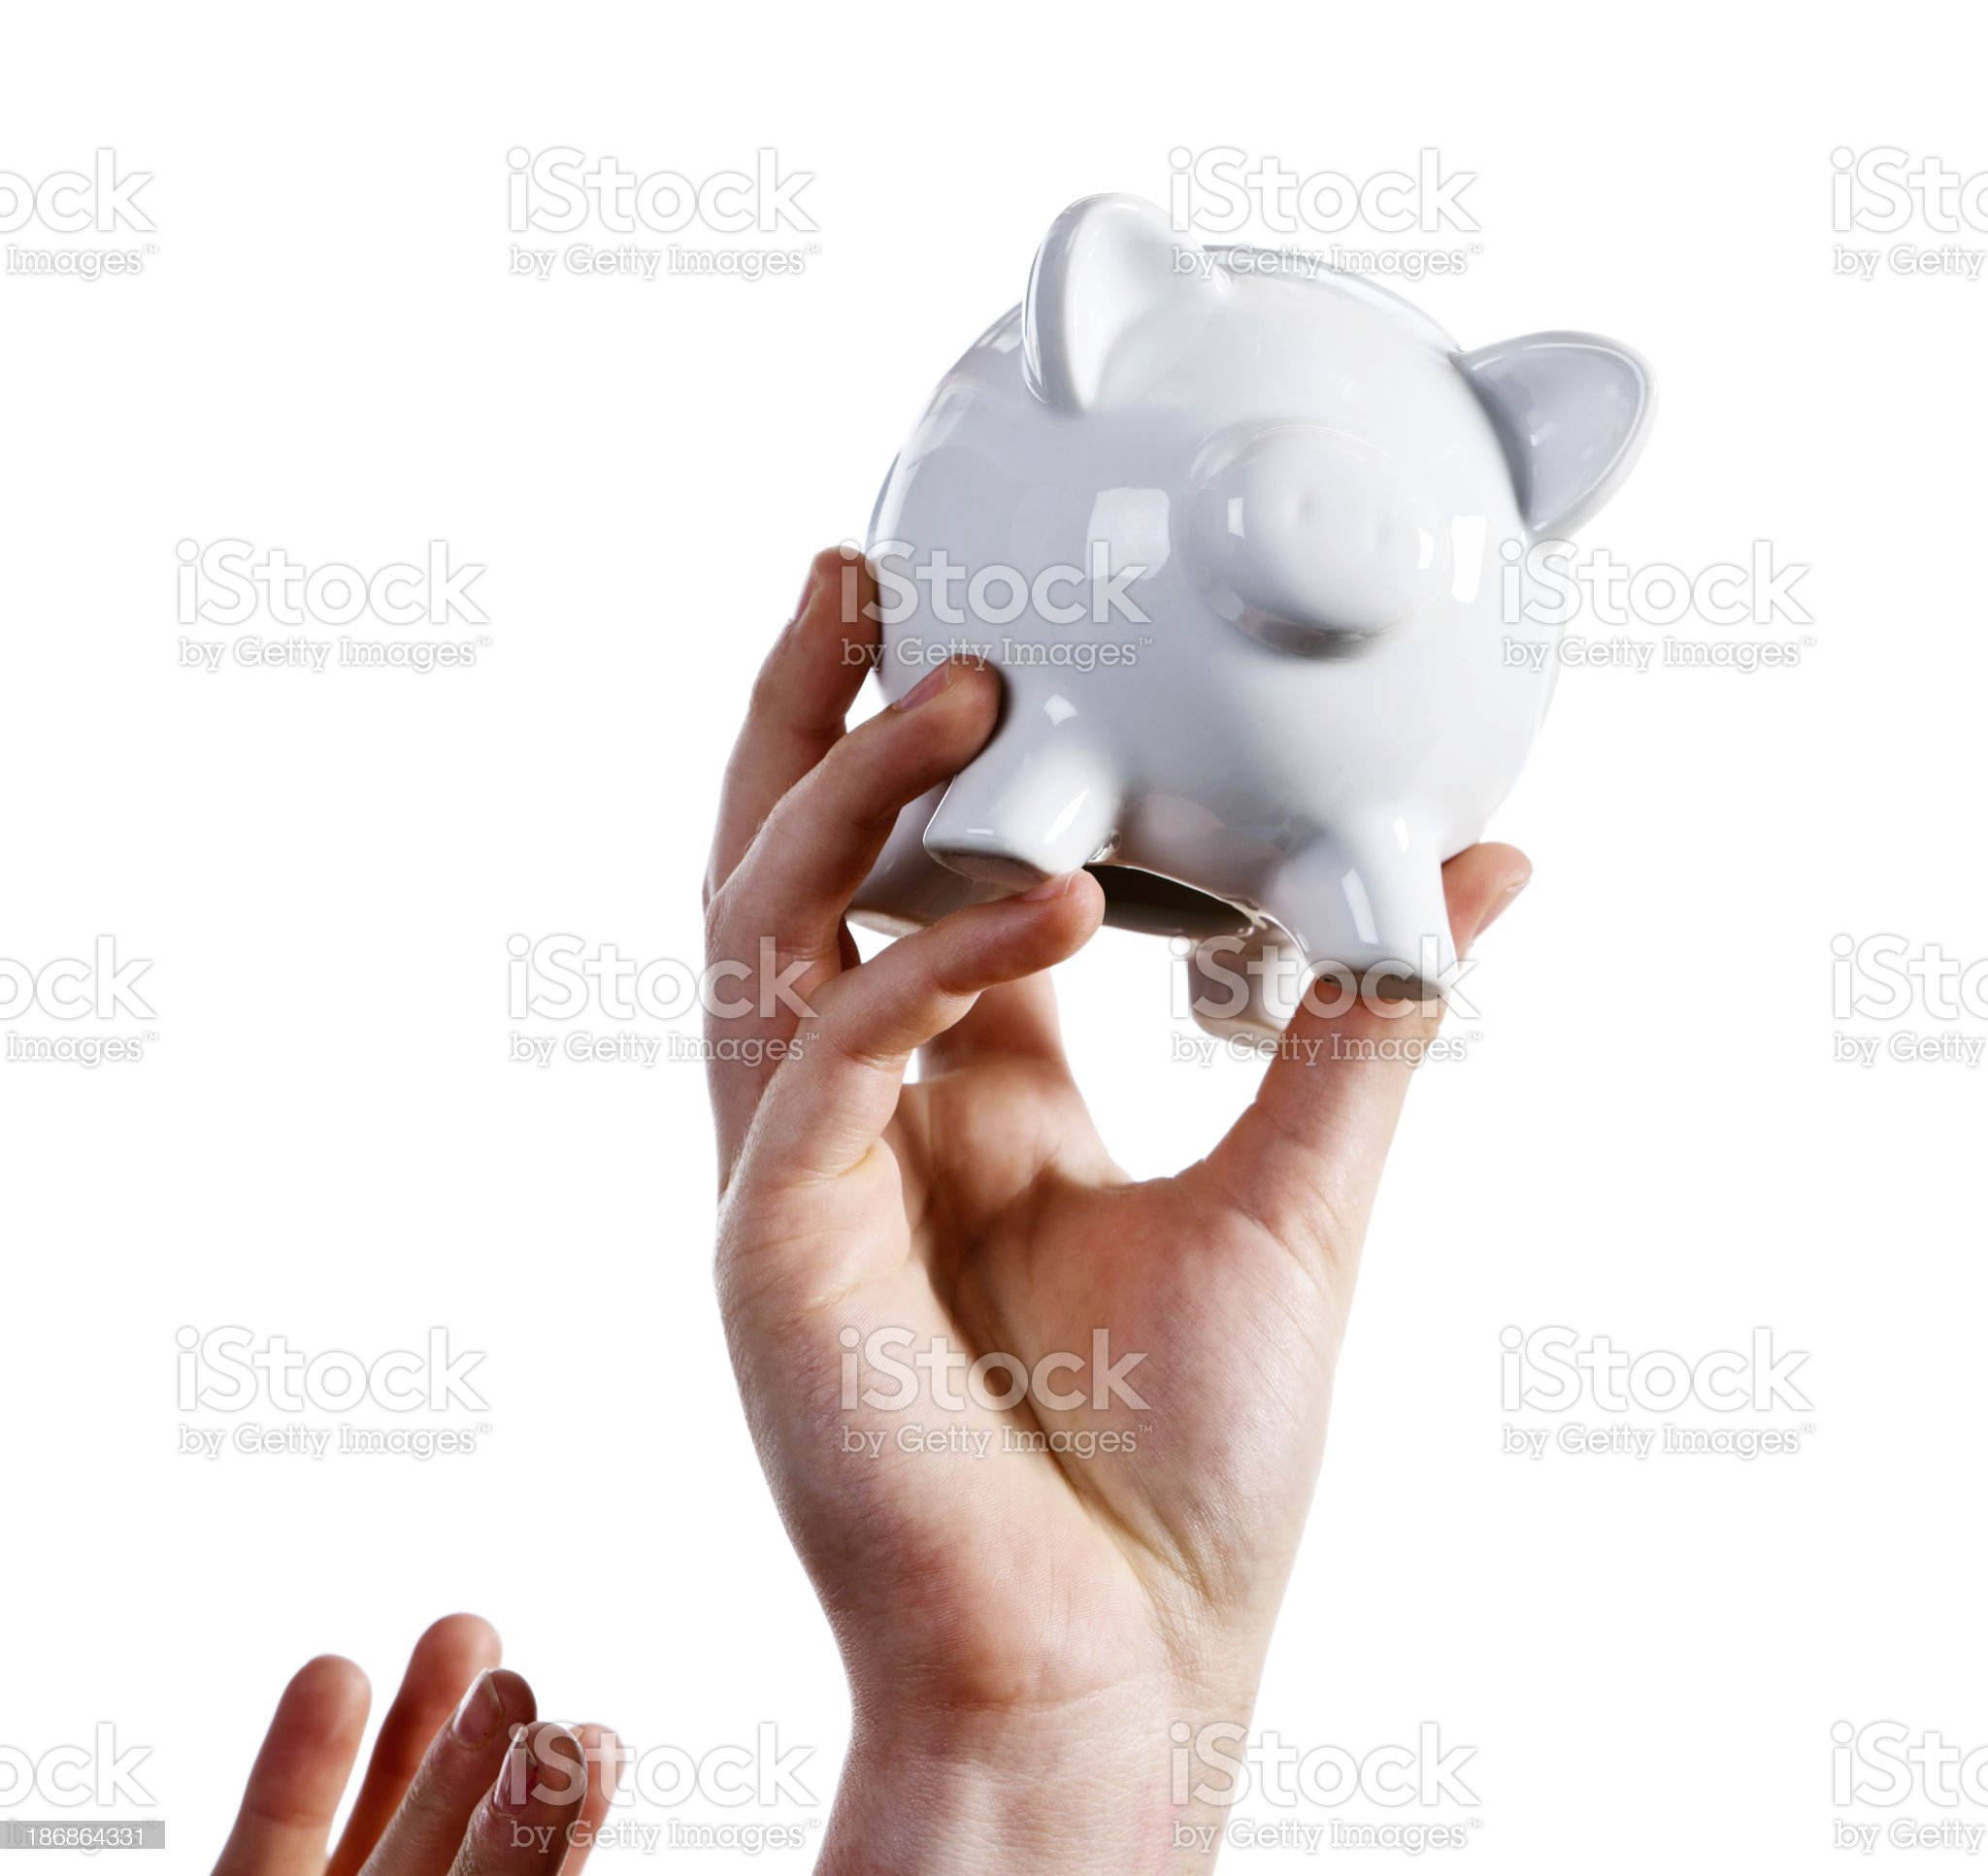 You can't have it! Hand holds piggybank out of reach royalty-free stock photo